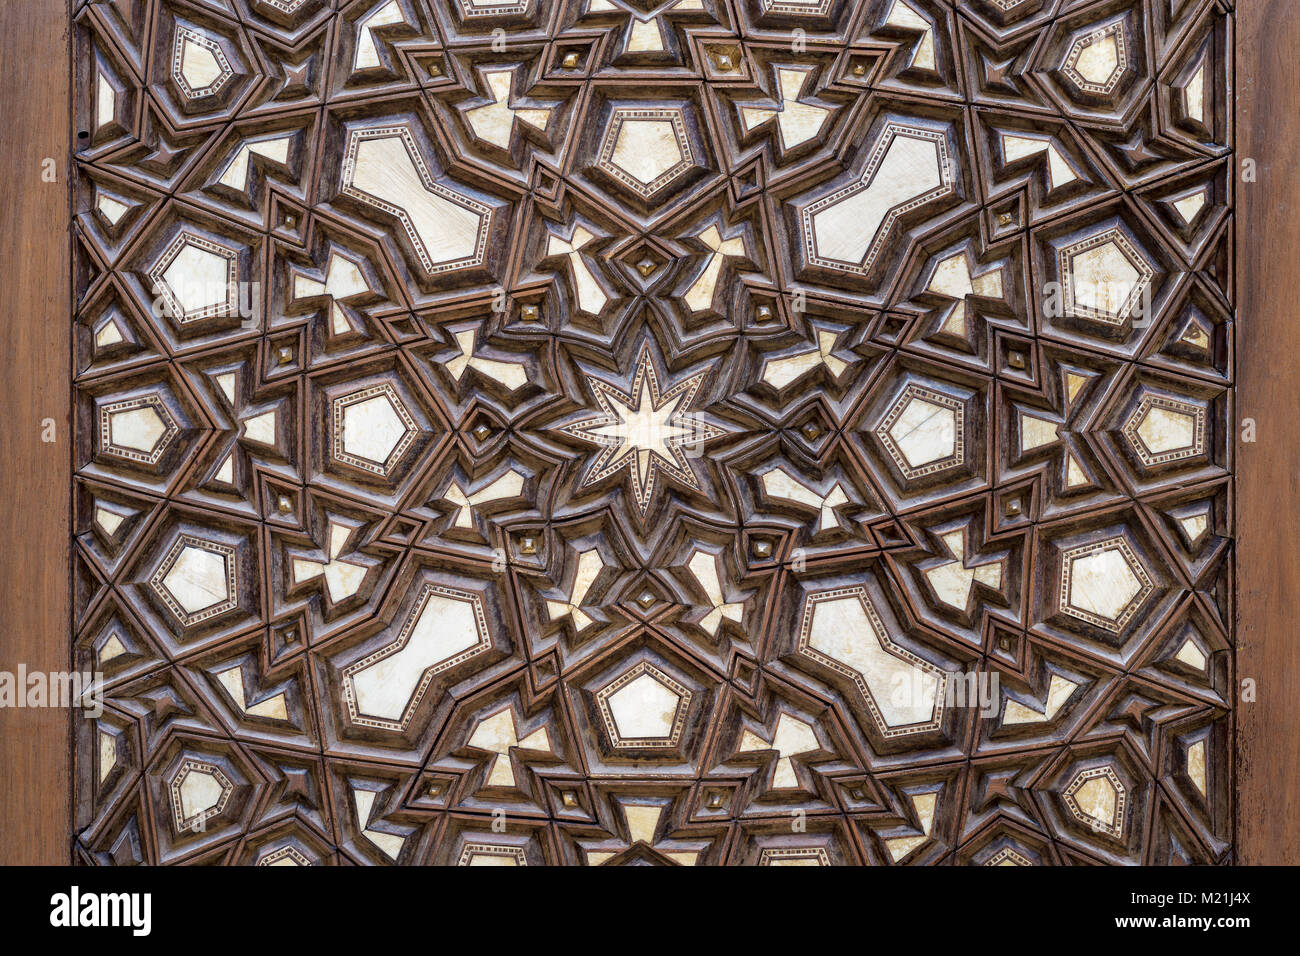 Closeup of arabesque ornaments of an old aged decorated wooden door - Stock Image